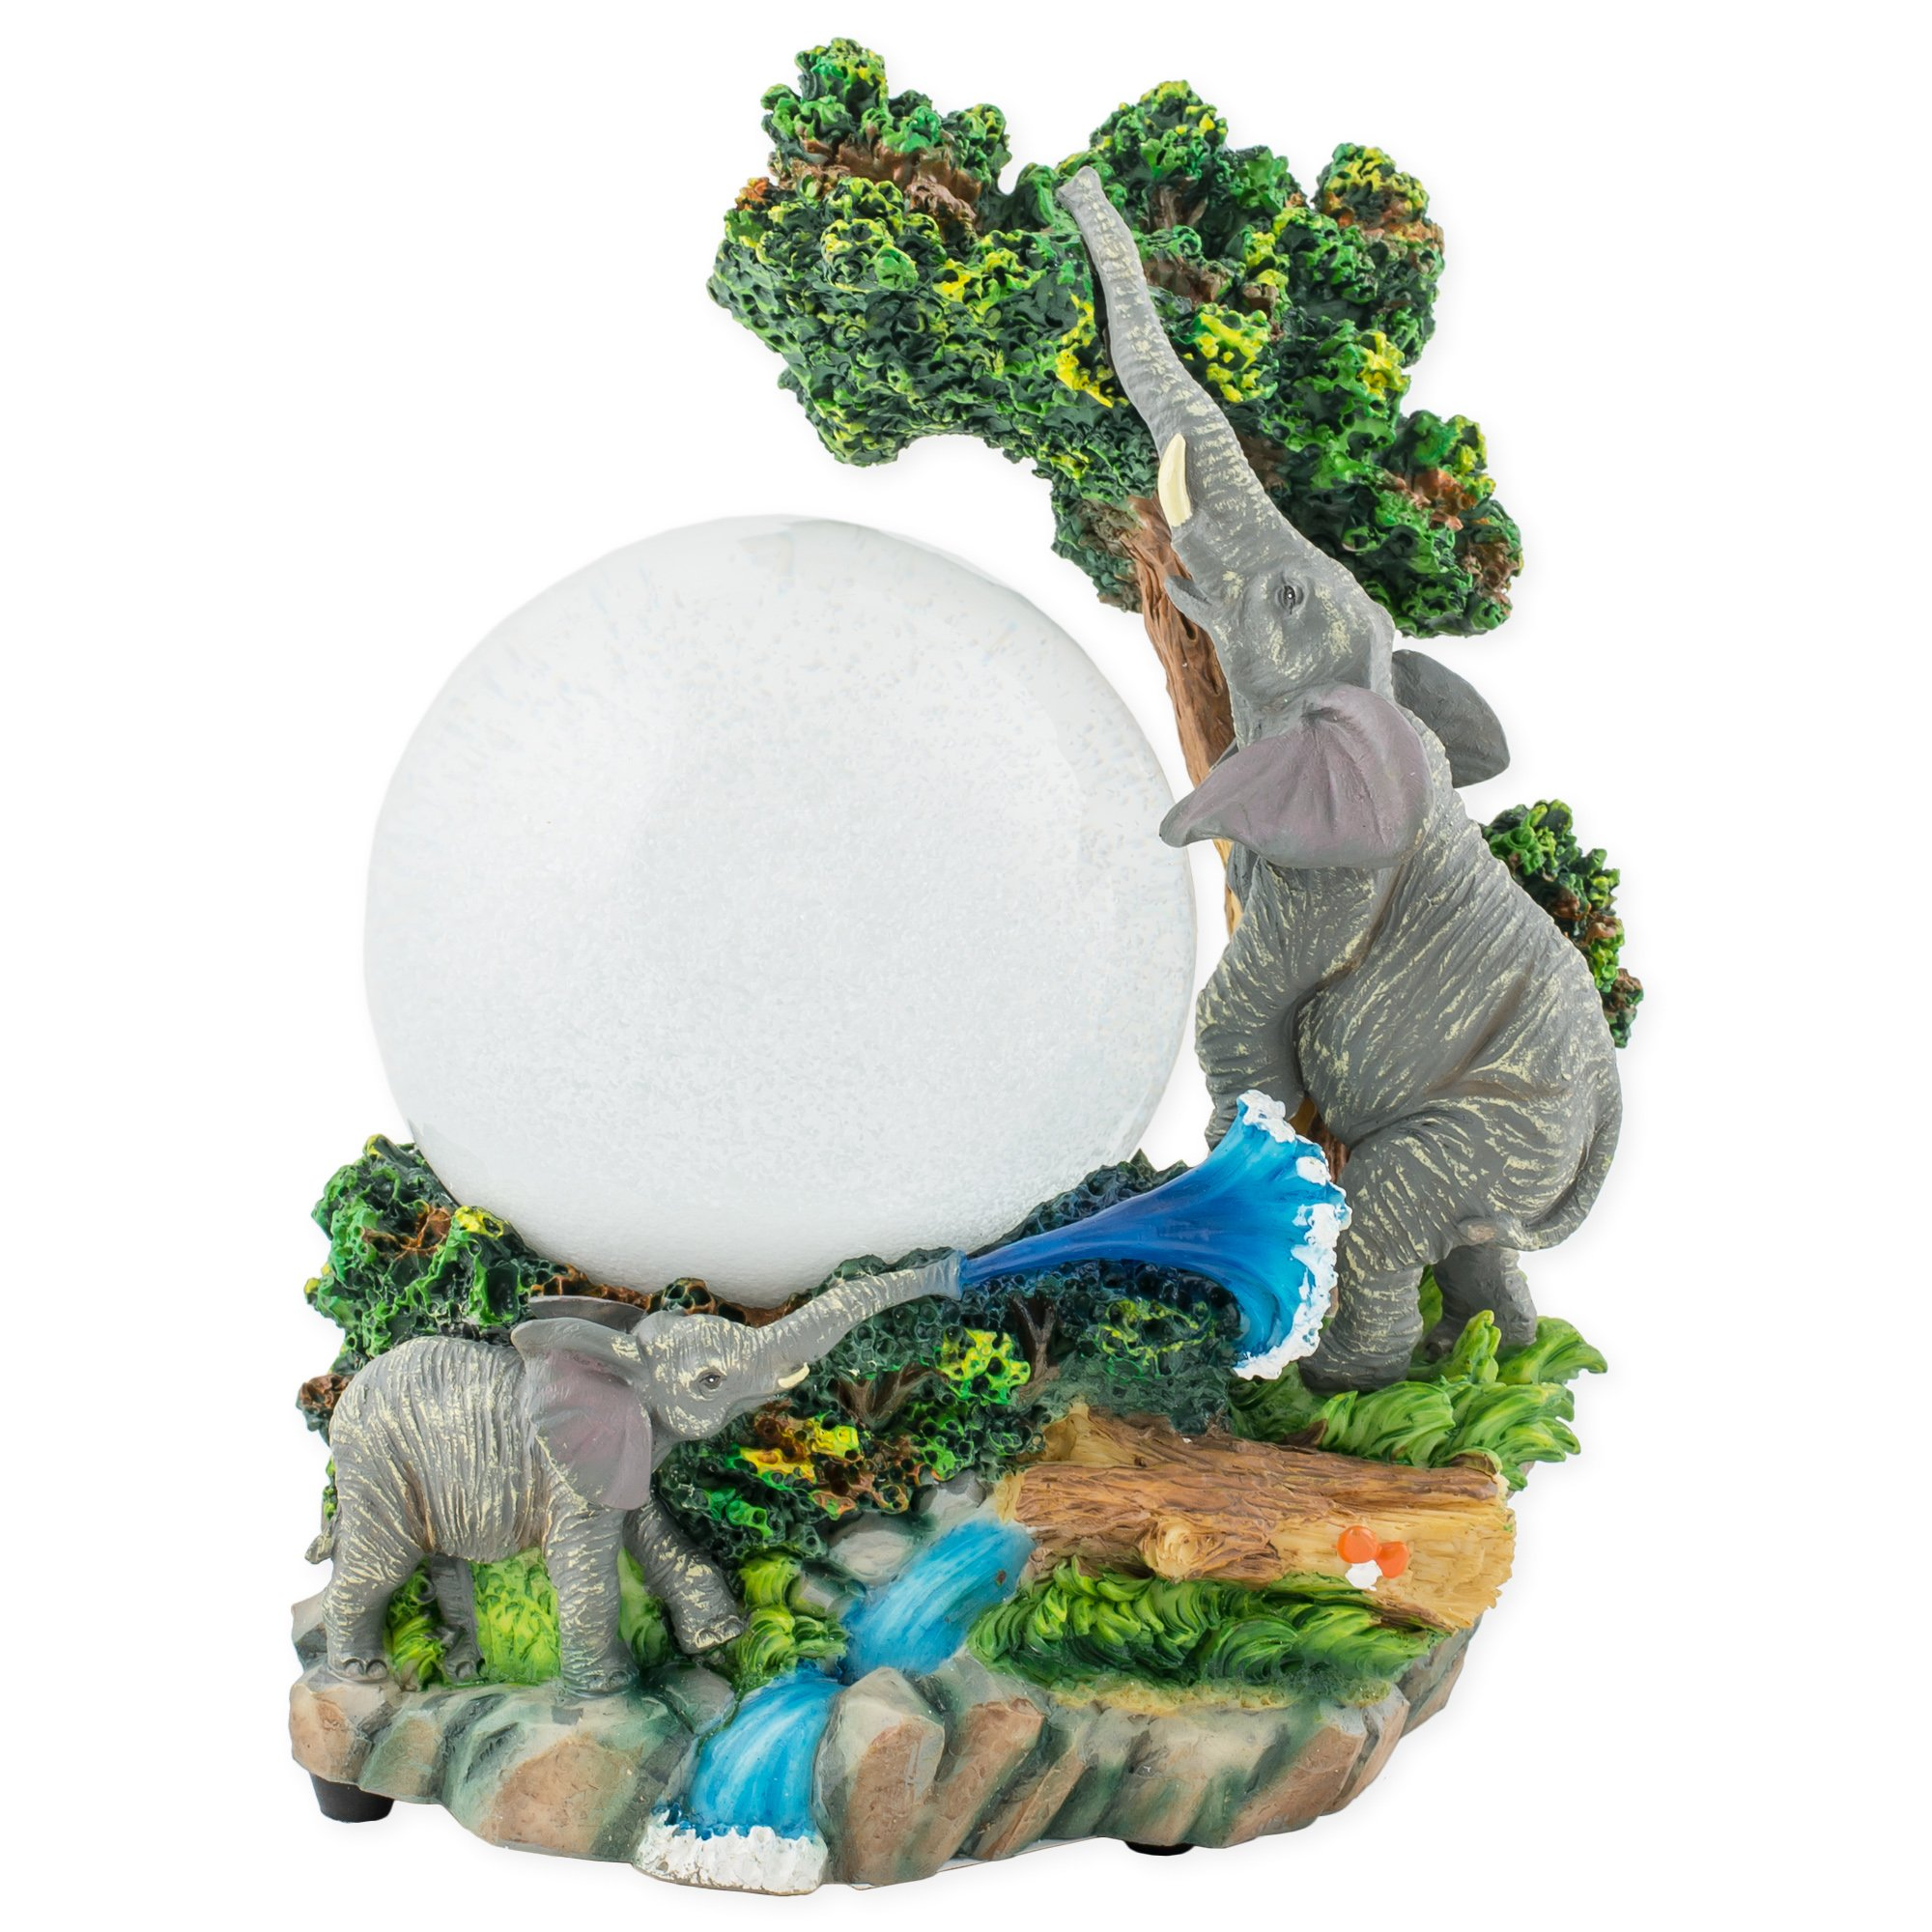 Playful Elephants in Jungle 100mm Resin 3D Water Globe Plays Tune Born Free